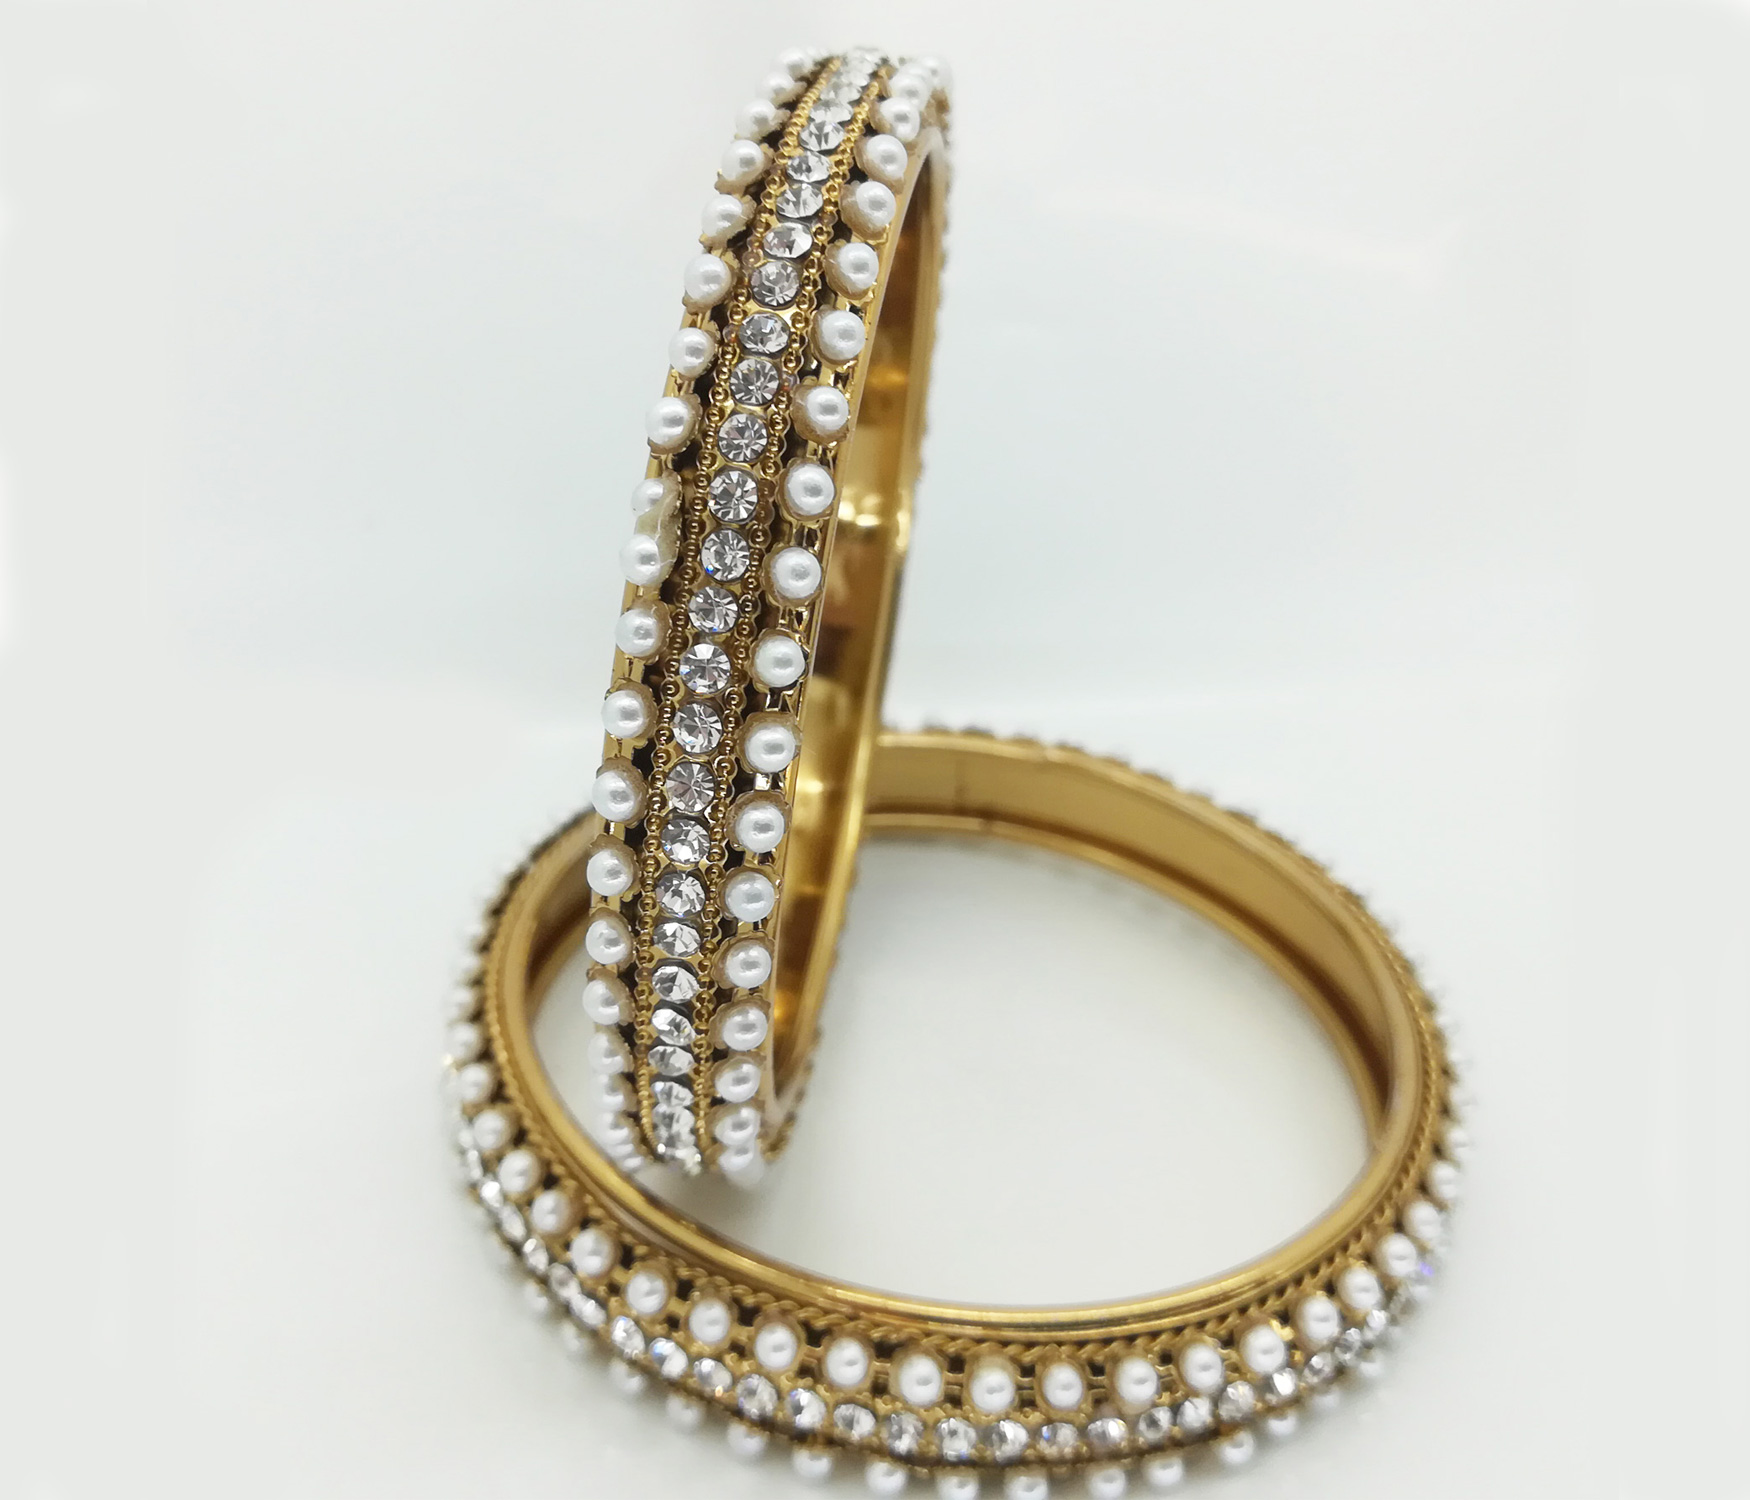 Beautiful bangles in pearl & white